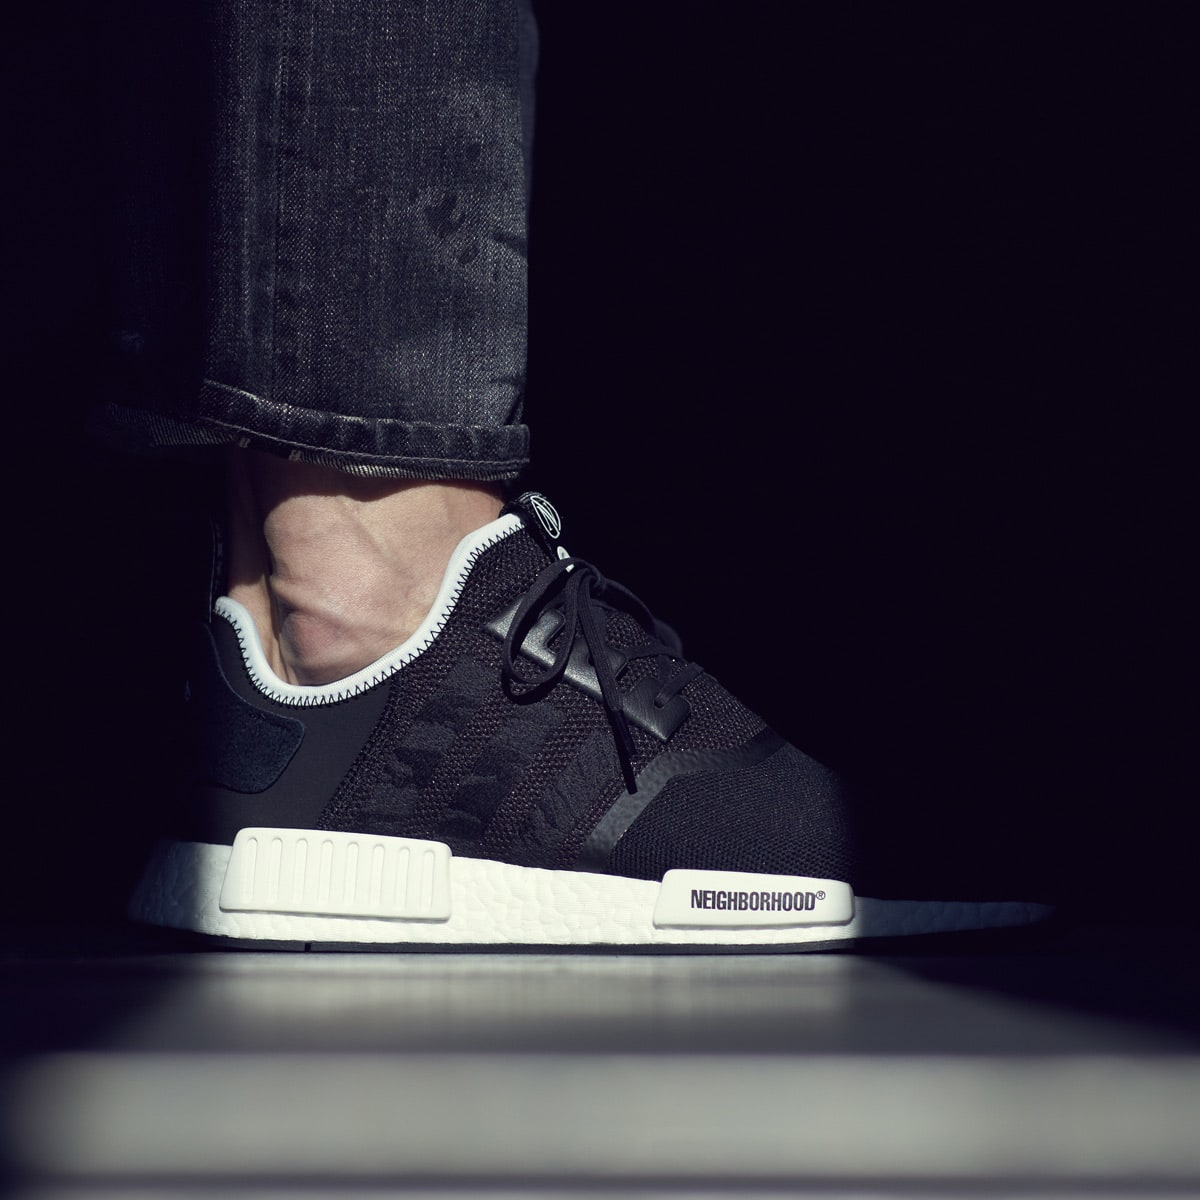 huge discount 852b9 74488 Adidas Consortium x Invincible x Neighborhood NMD R1 (Black)